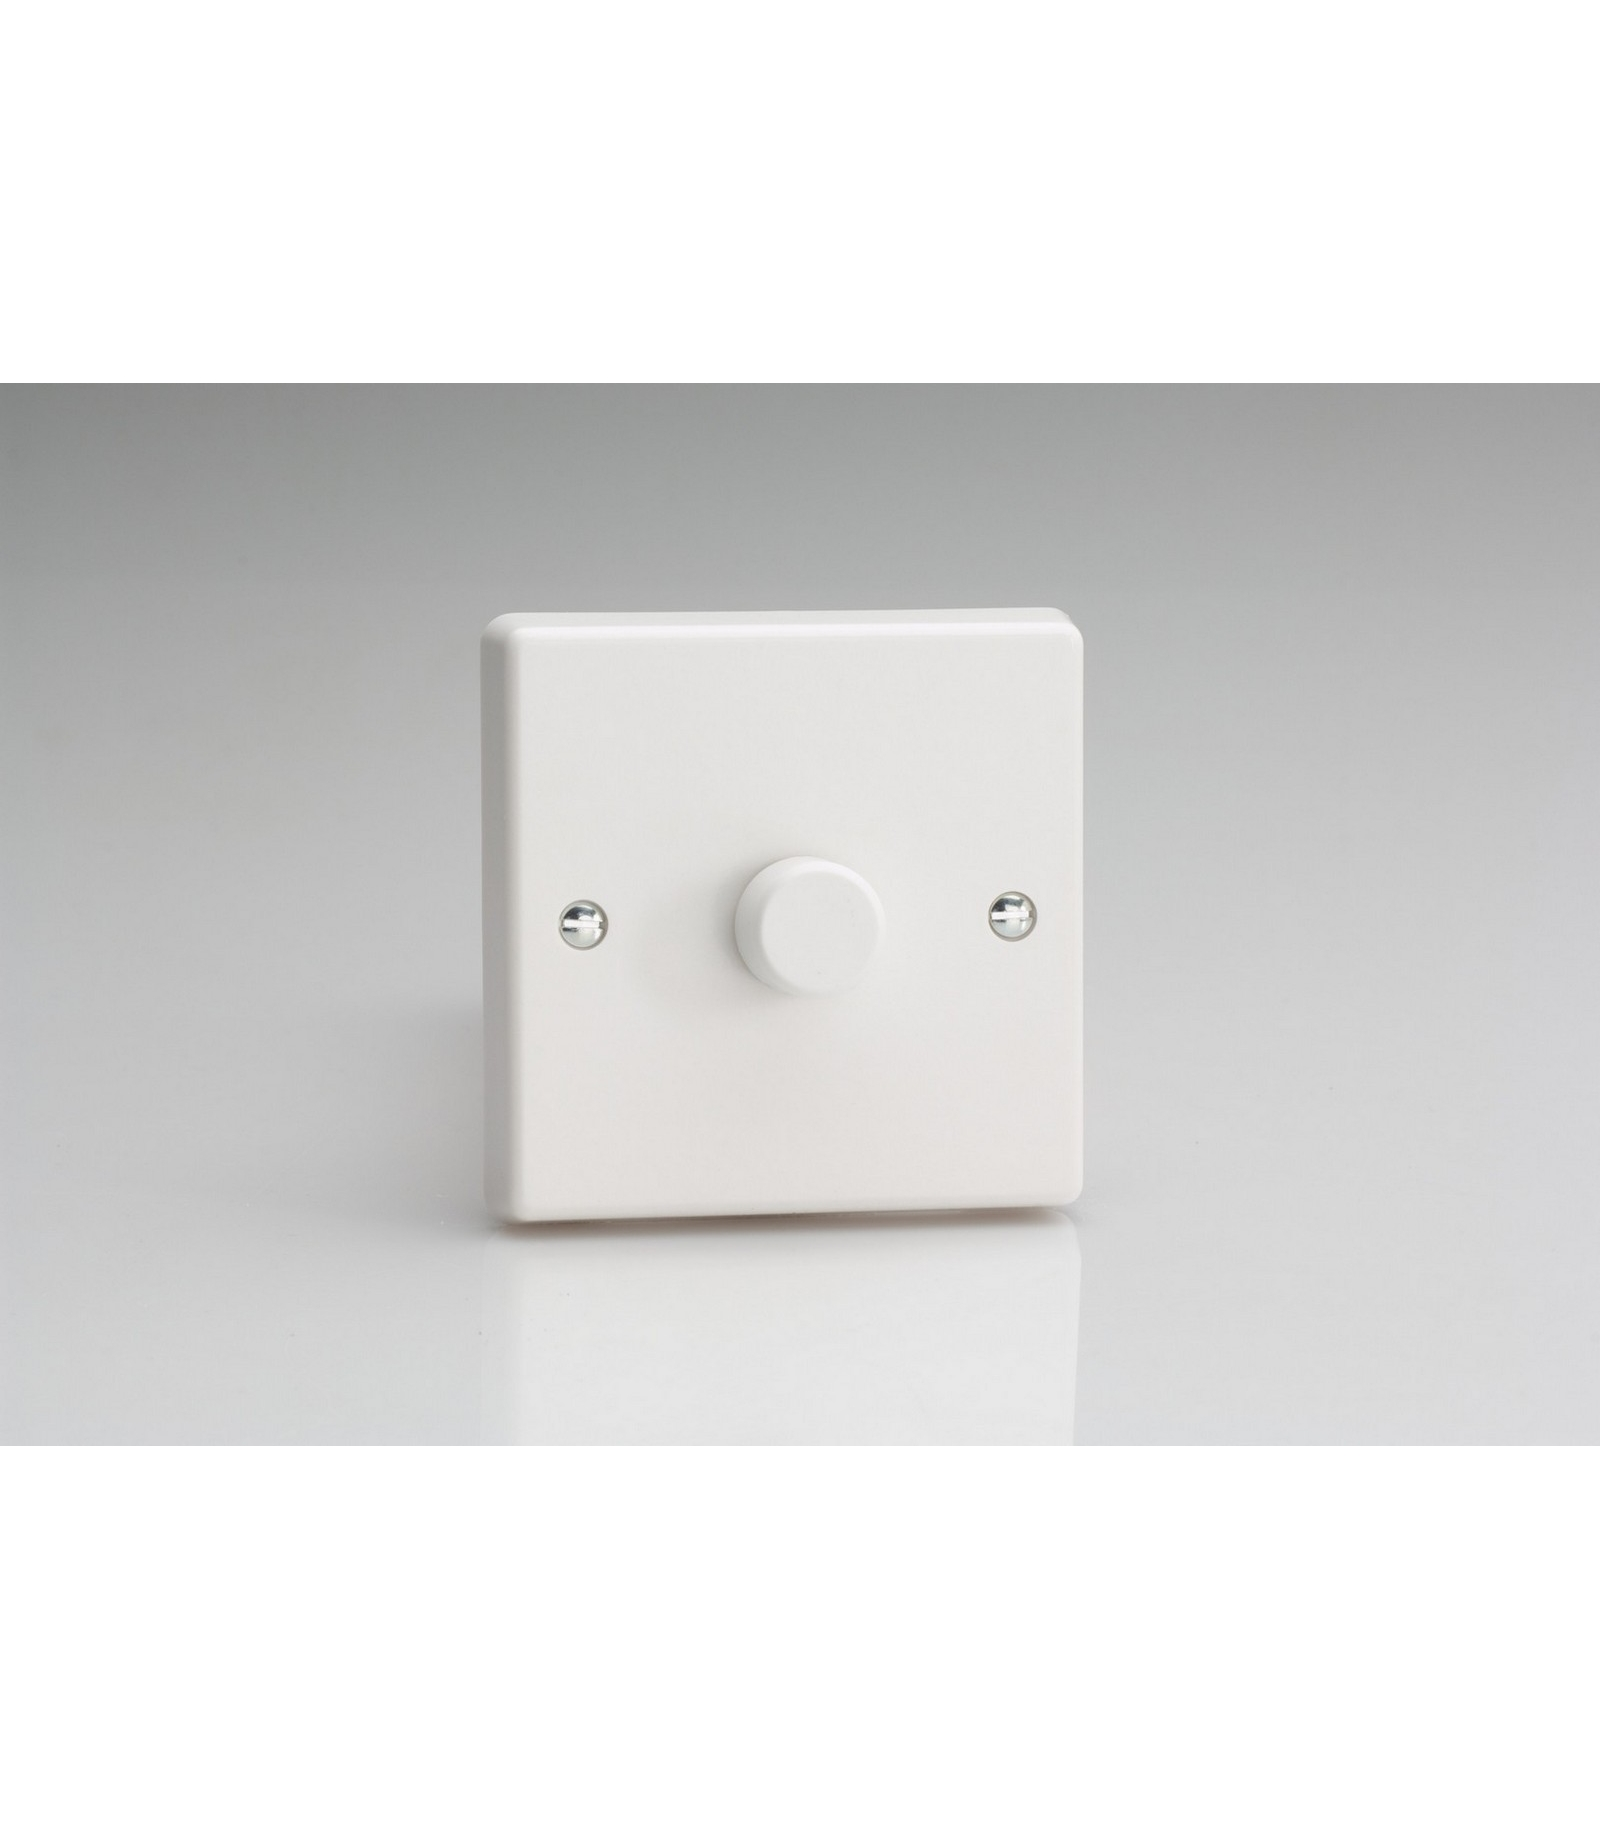 Varilight V-Pro   1-Gang 2-Way Push-On//Off Rotary LED Dimmer Light Switch 1 x 0